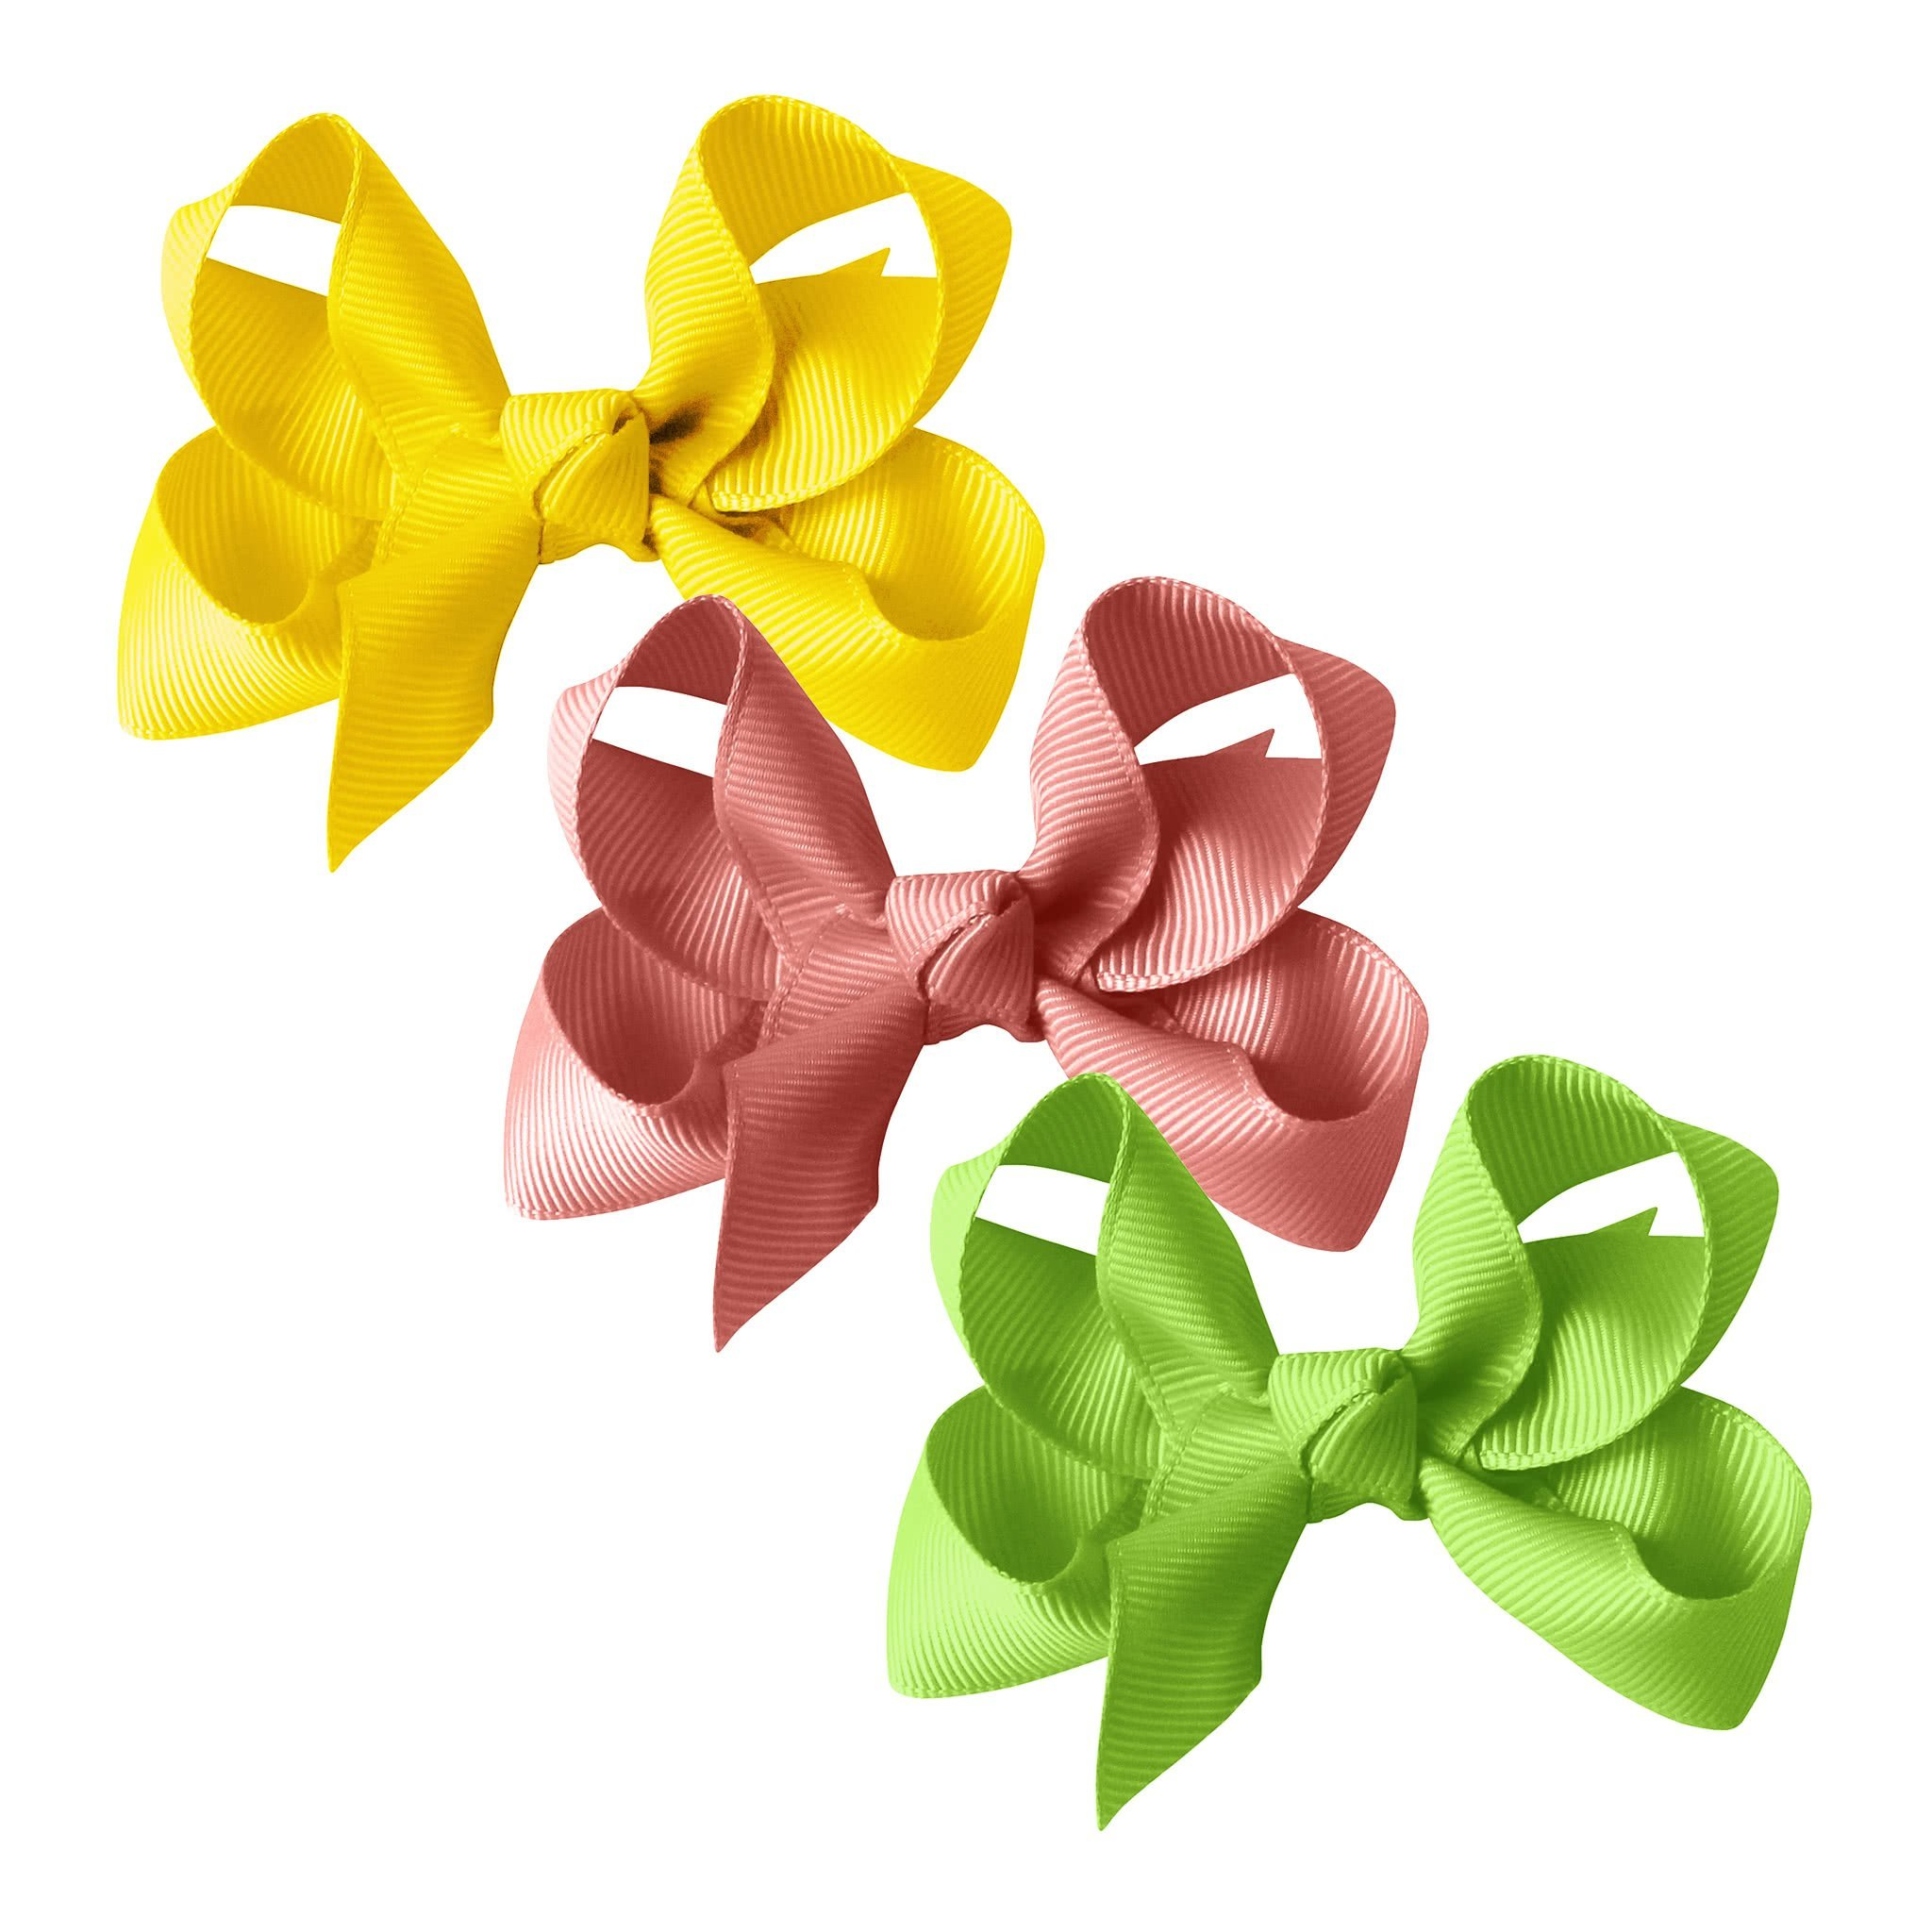 Image of Milledeux® gift set - Grosgrain Collection - 3 Medium boutique bows - yellow/rose/green